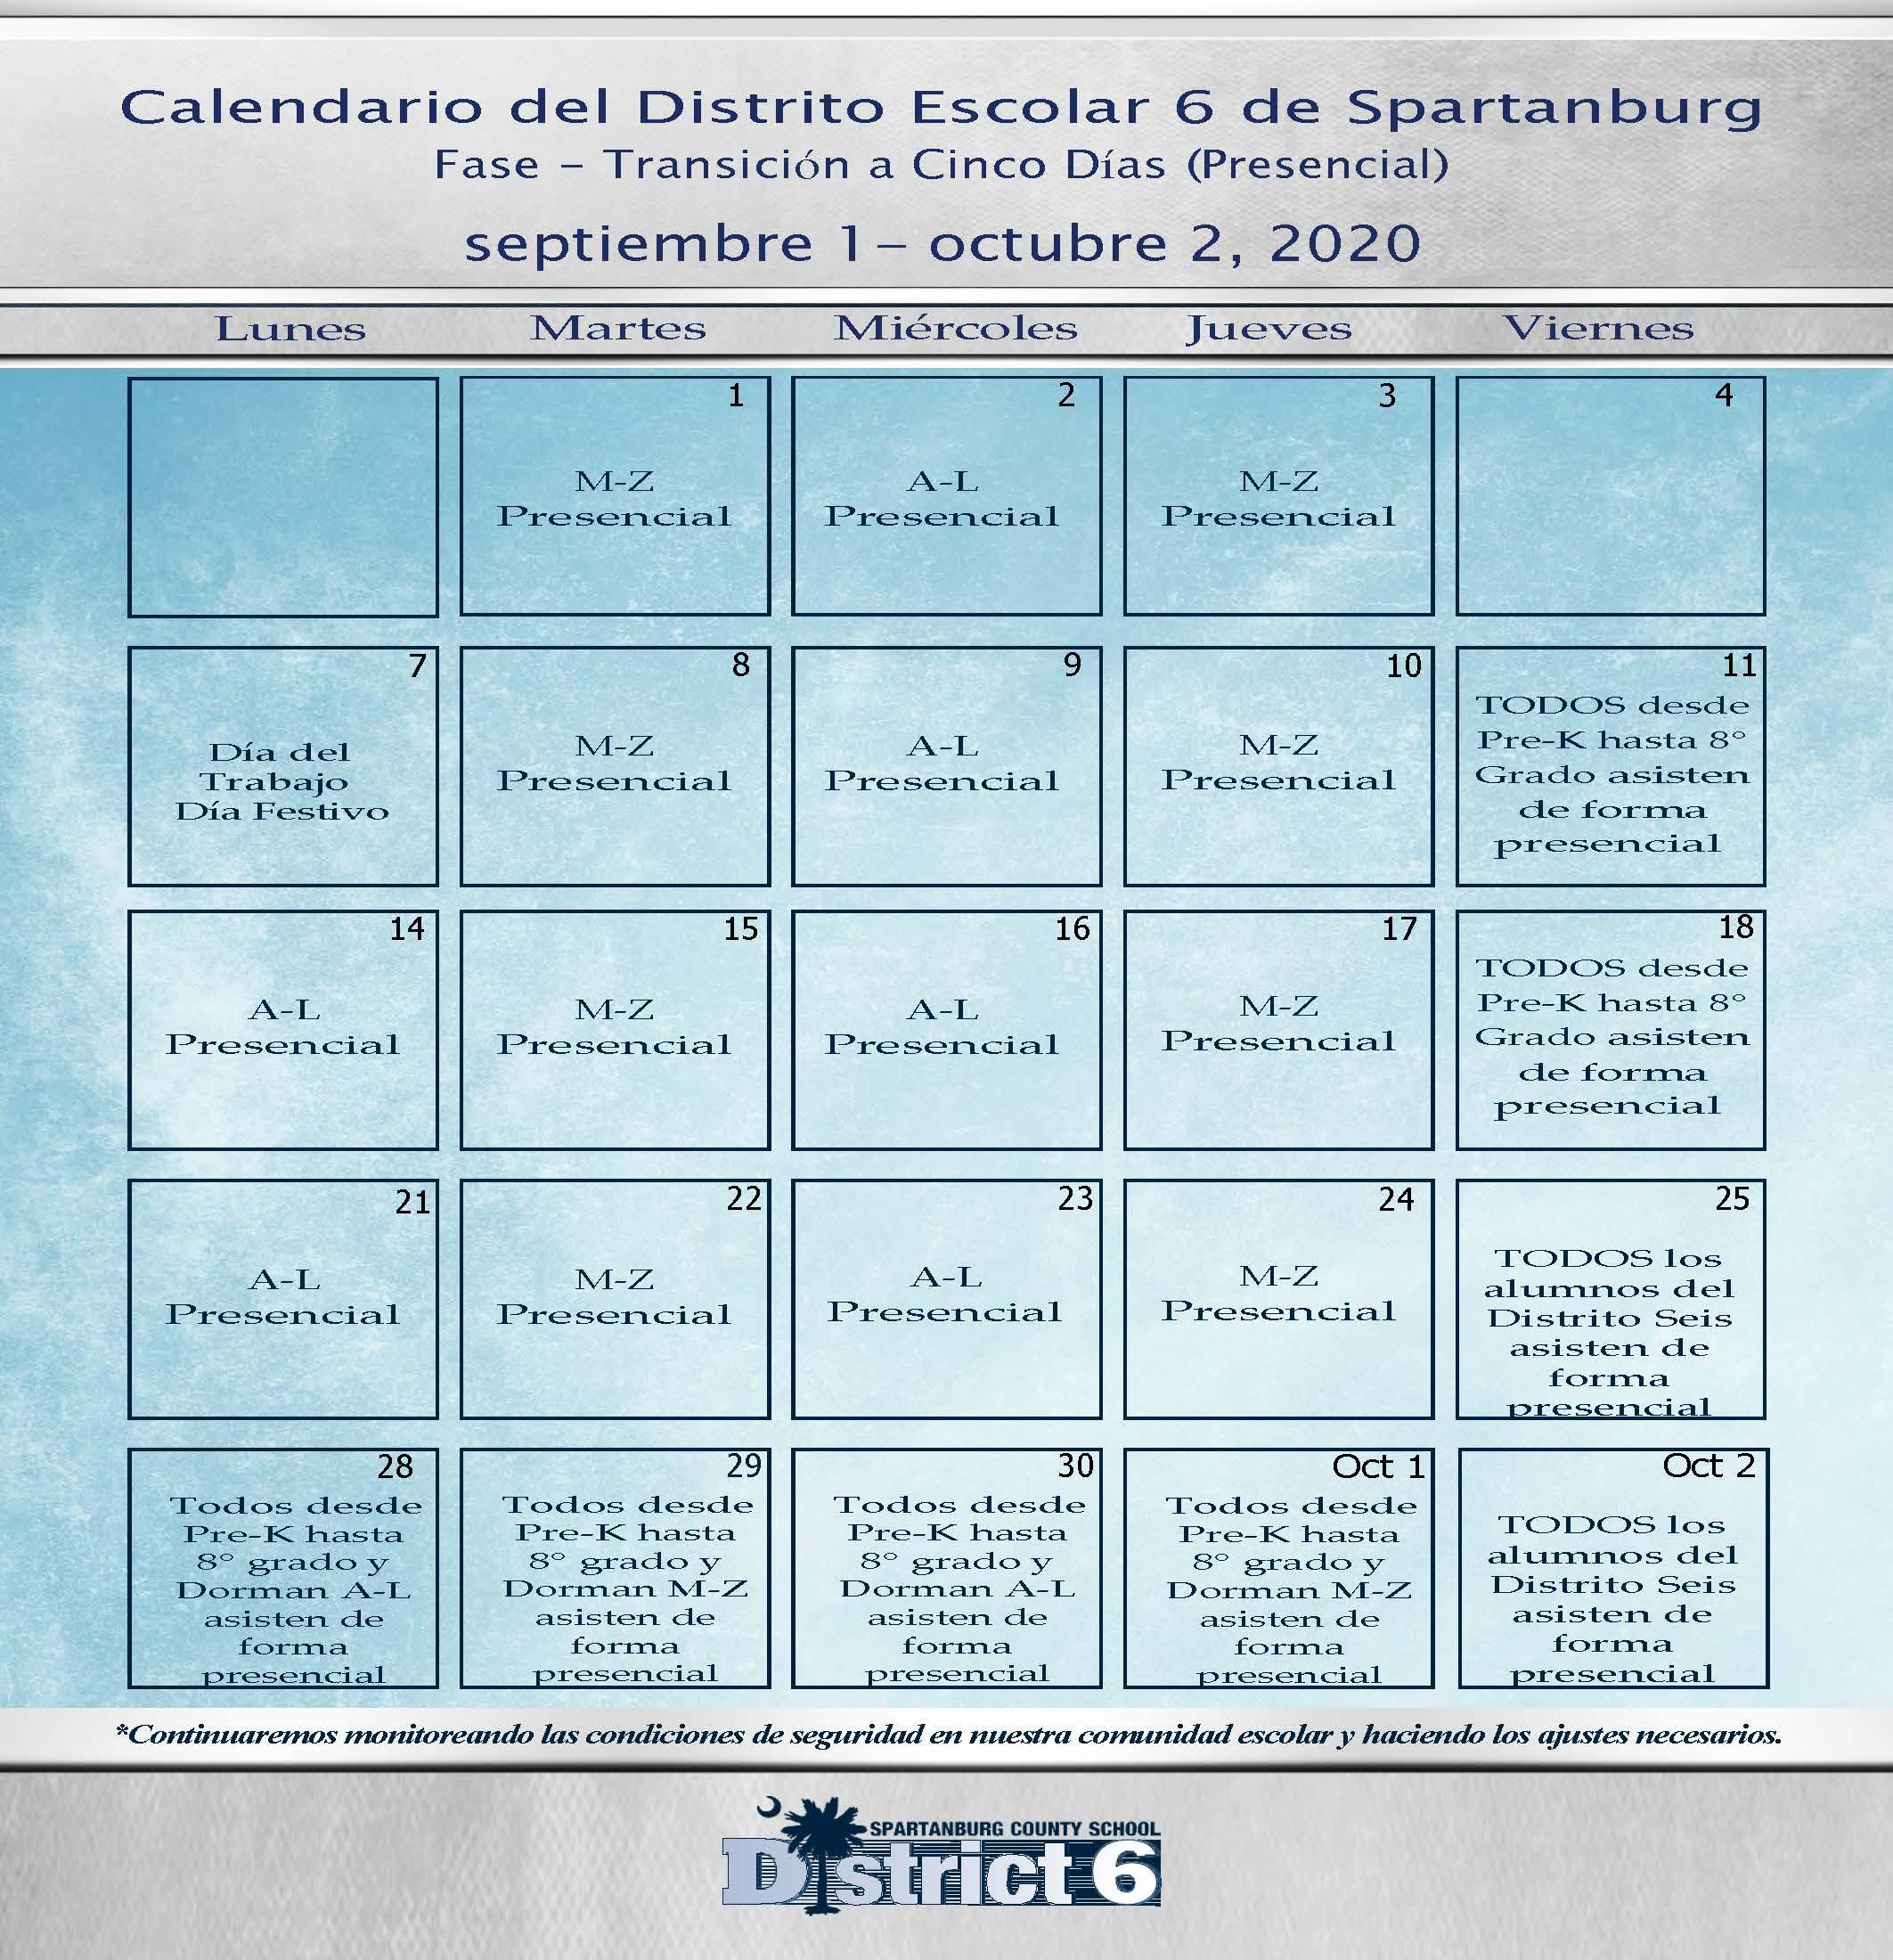 Spanish version calendar